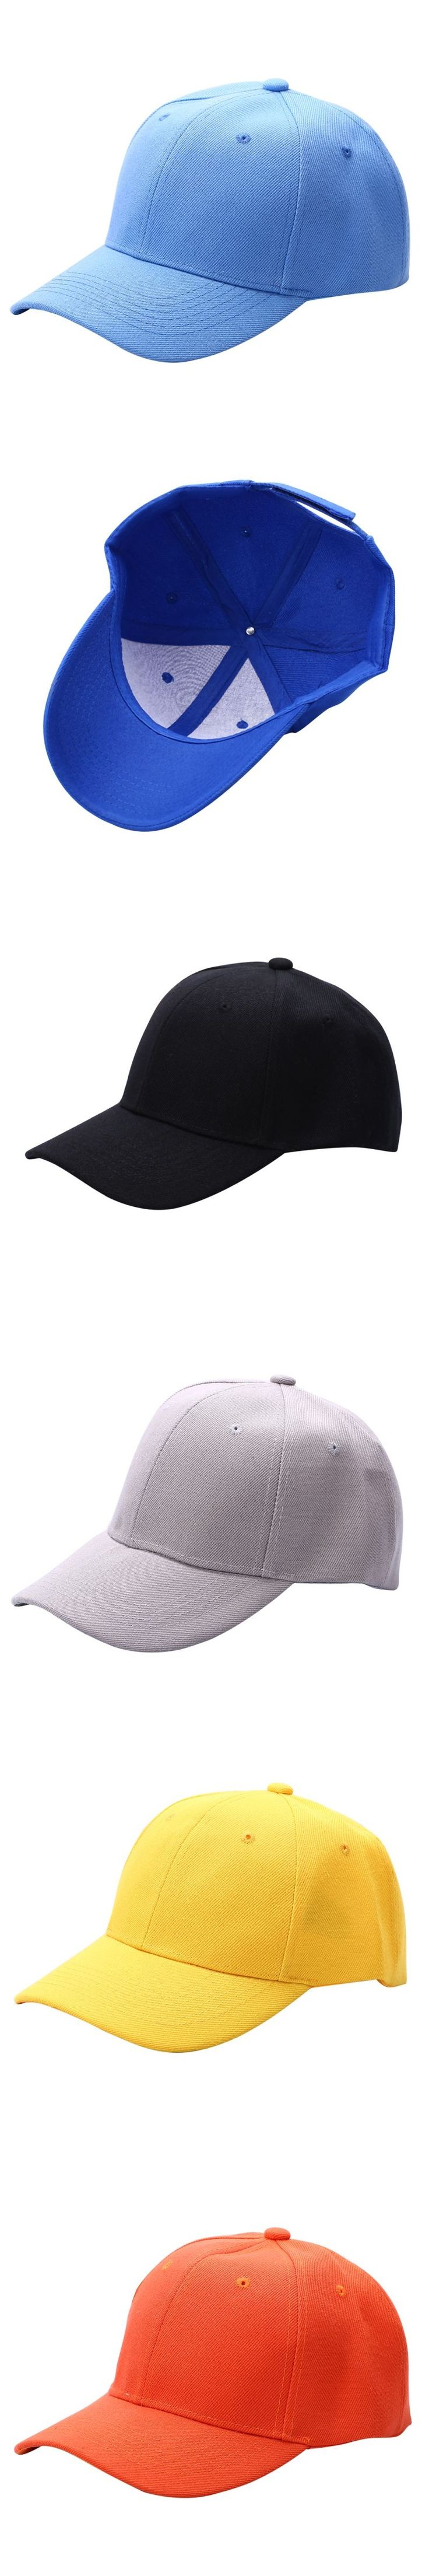 New Men Women Plain Baseball Cap Unisex Curved Visor Hat Hip-Hop Adjustable Peaked Hat Visor Caps Solid